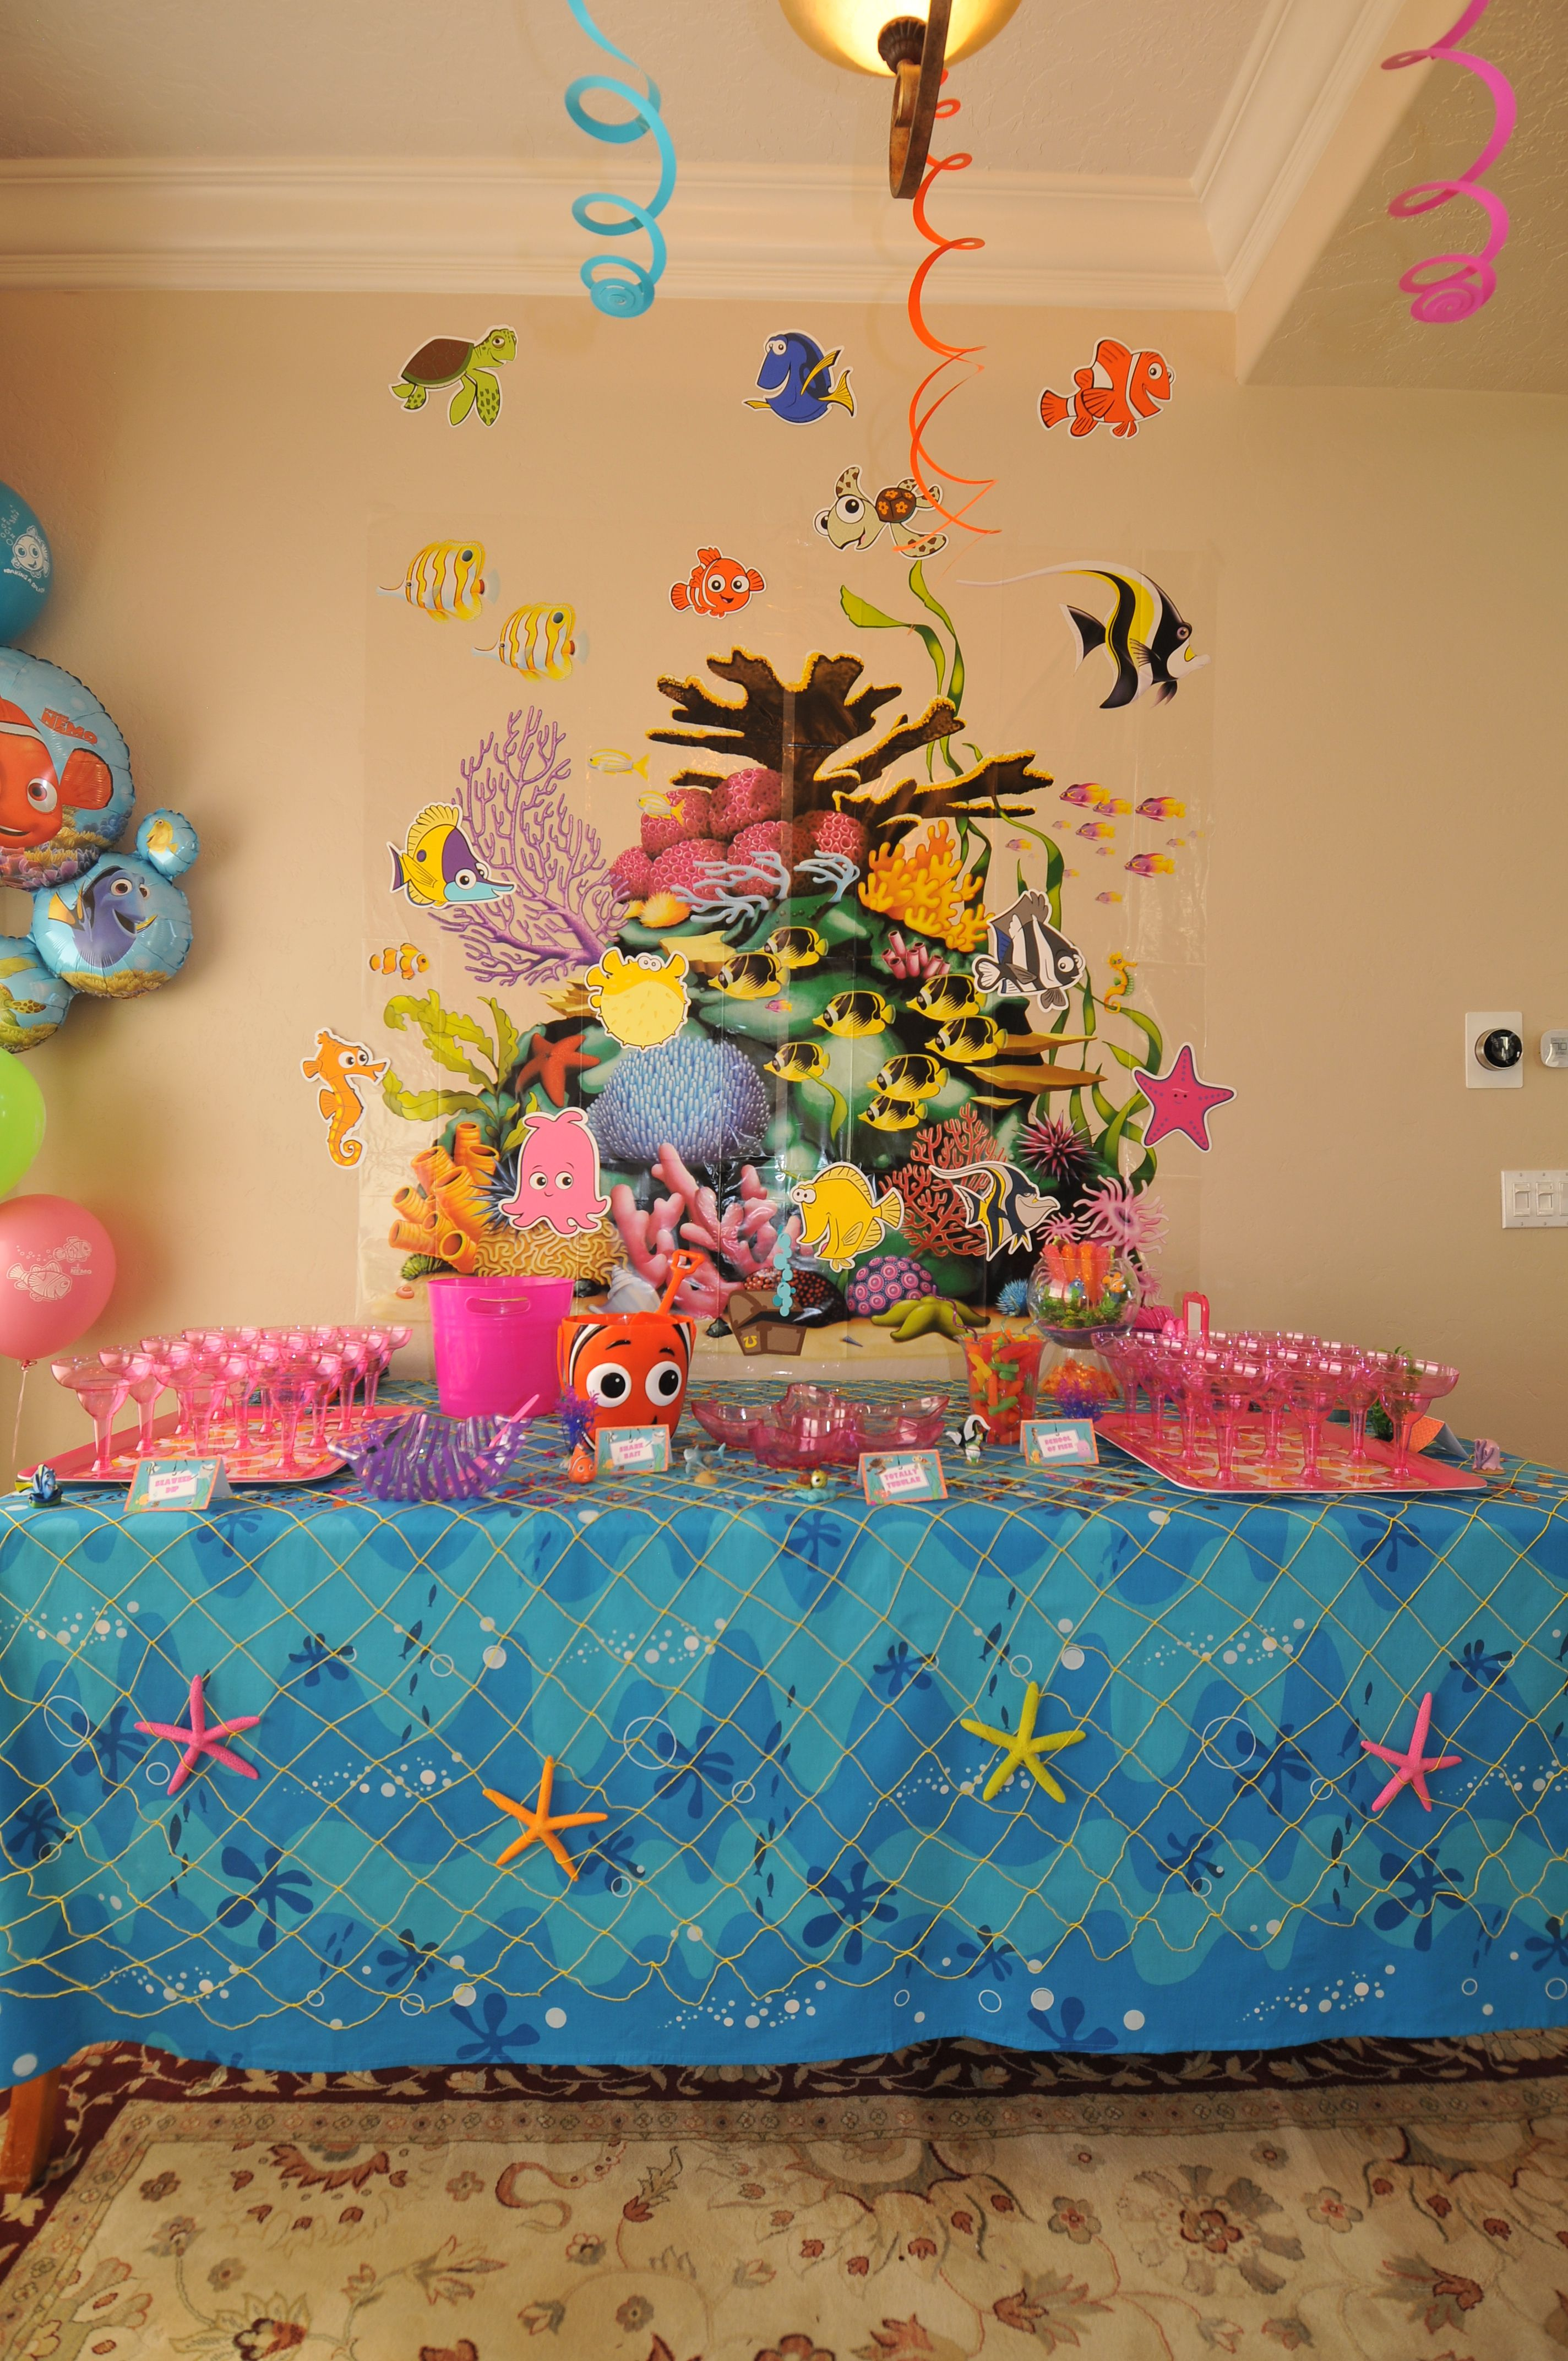 Finding Nemo Baby Shower Table decorations | Disney ...